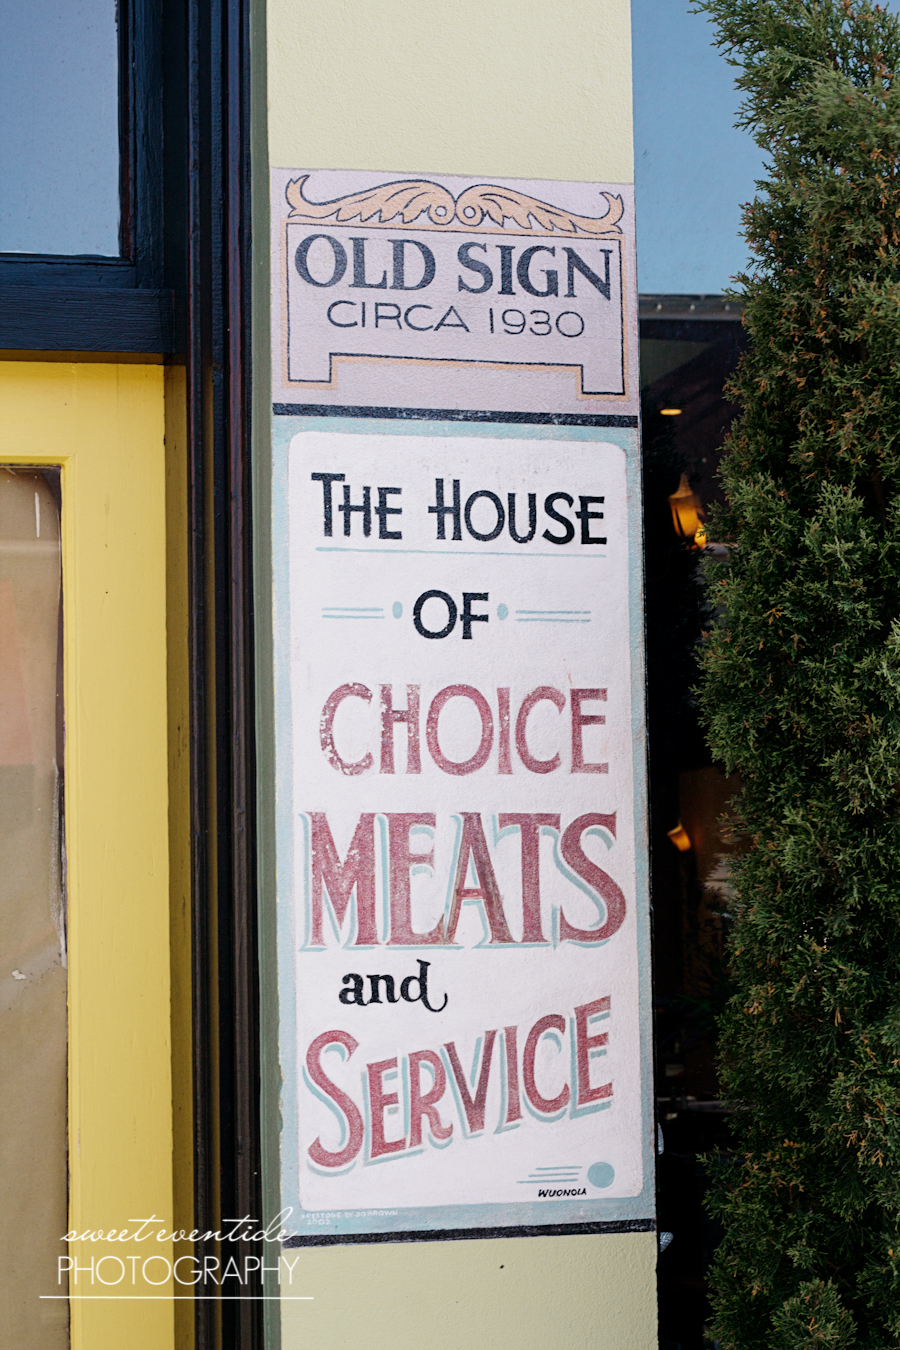 old sign circa 1930 Astoria Oregon The House of Choice Meats and Service